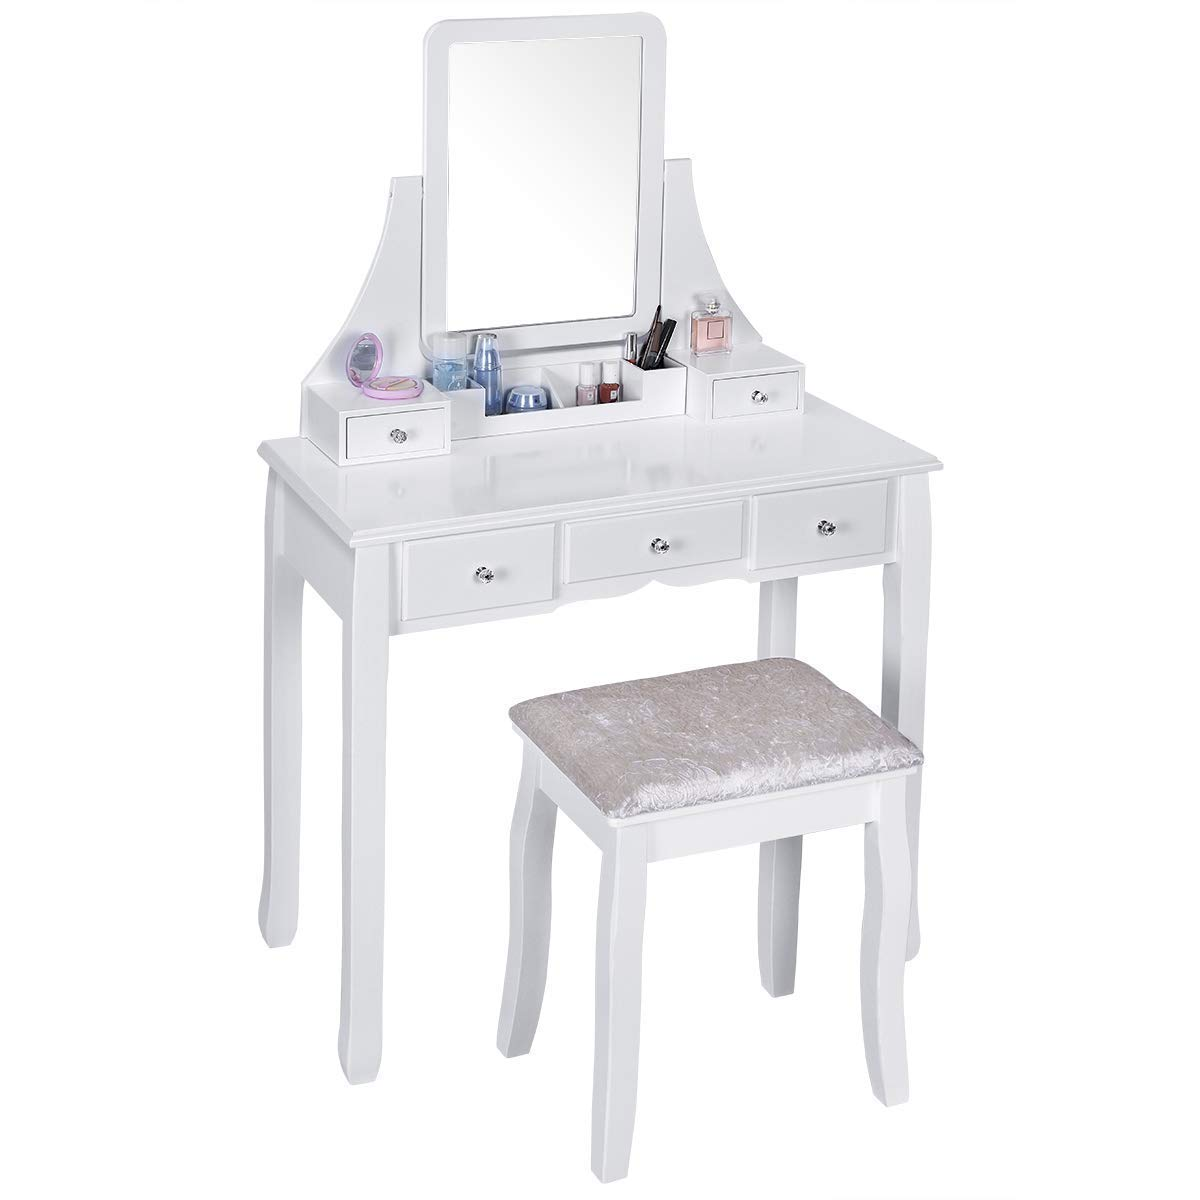 Vanity Set, Vanity Table with Mirror and Cushioned Stool, Makeup Vanity with 3 Large Sliding Drawers, Removable Organizer, Makeup Table Dressing Table Easy Assembly by Ulikit